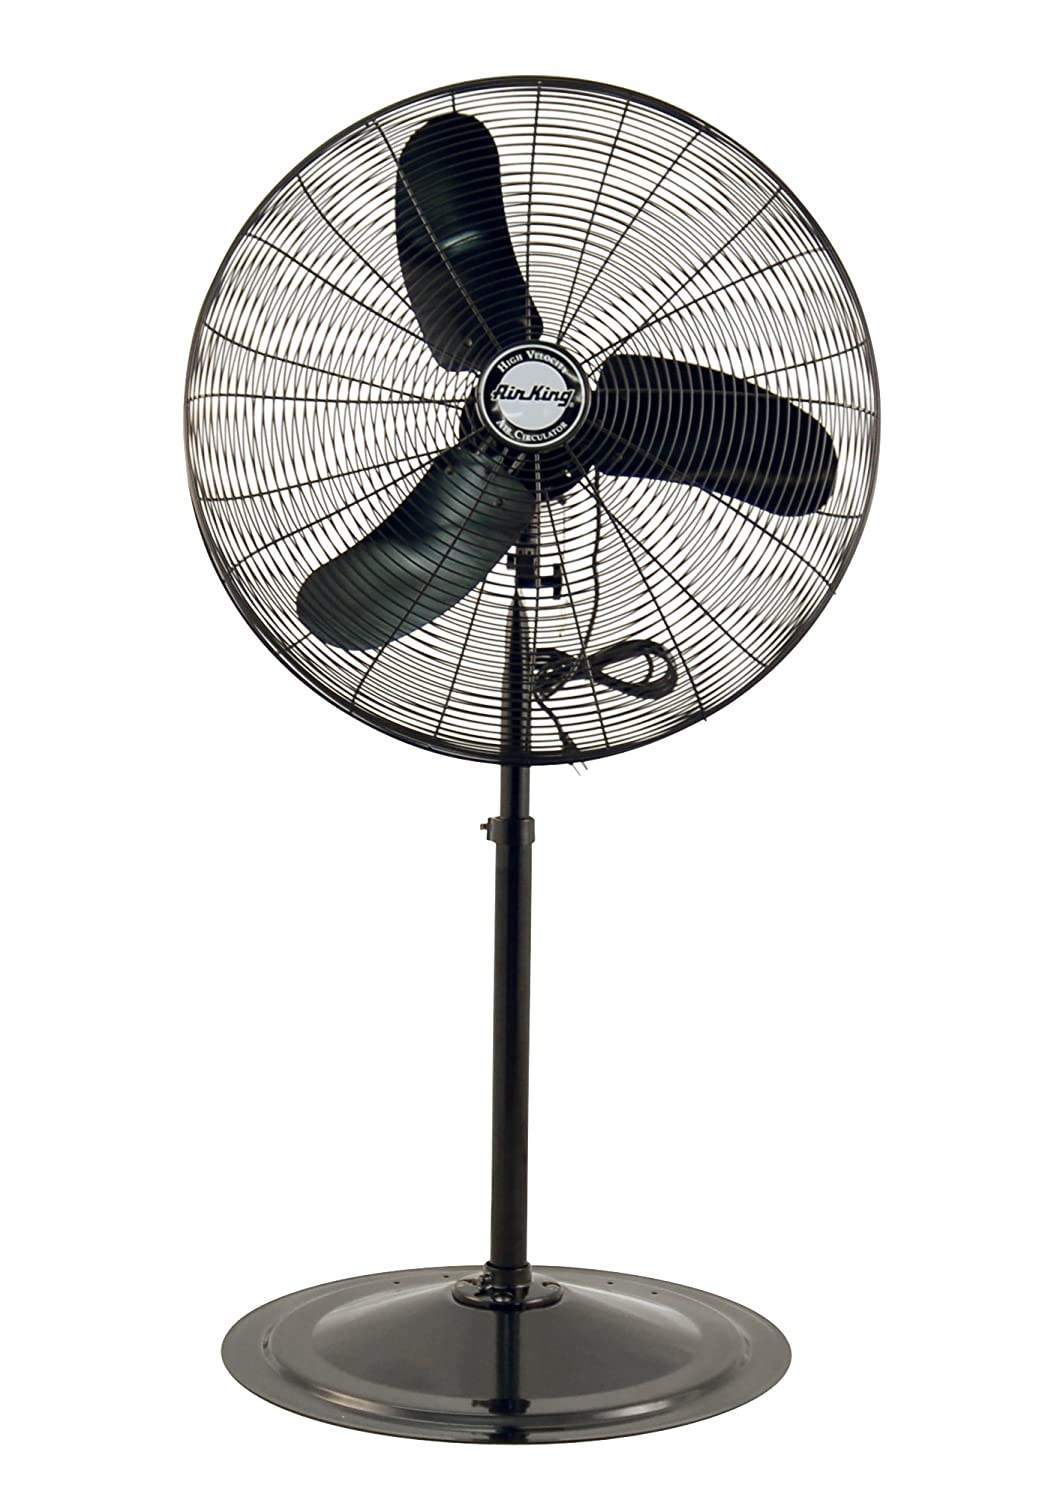 oscillating high velocity extendable inch fan power tower stand p floor asp pedestal